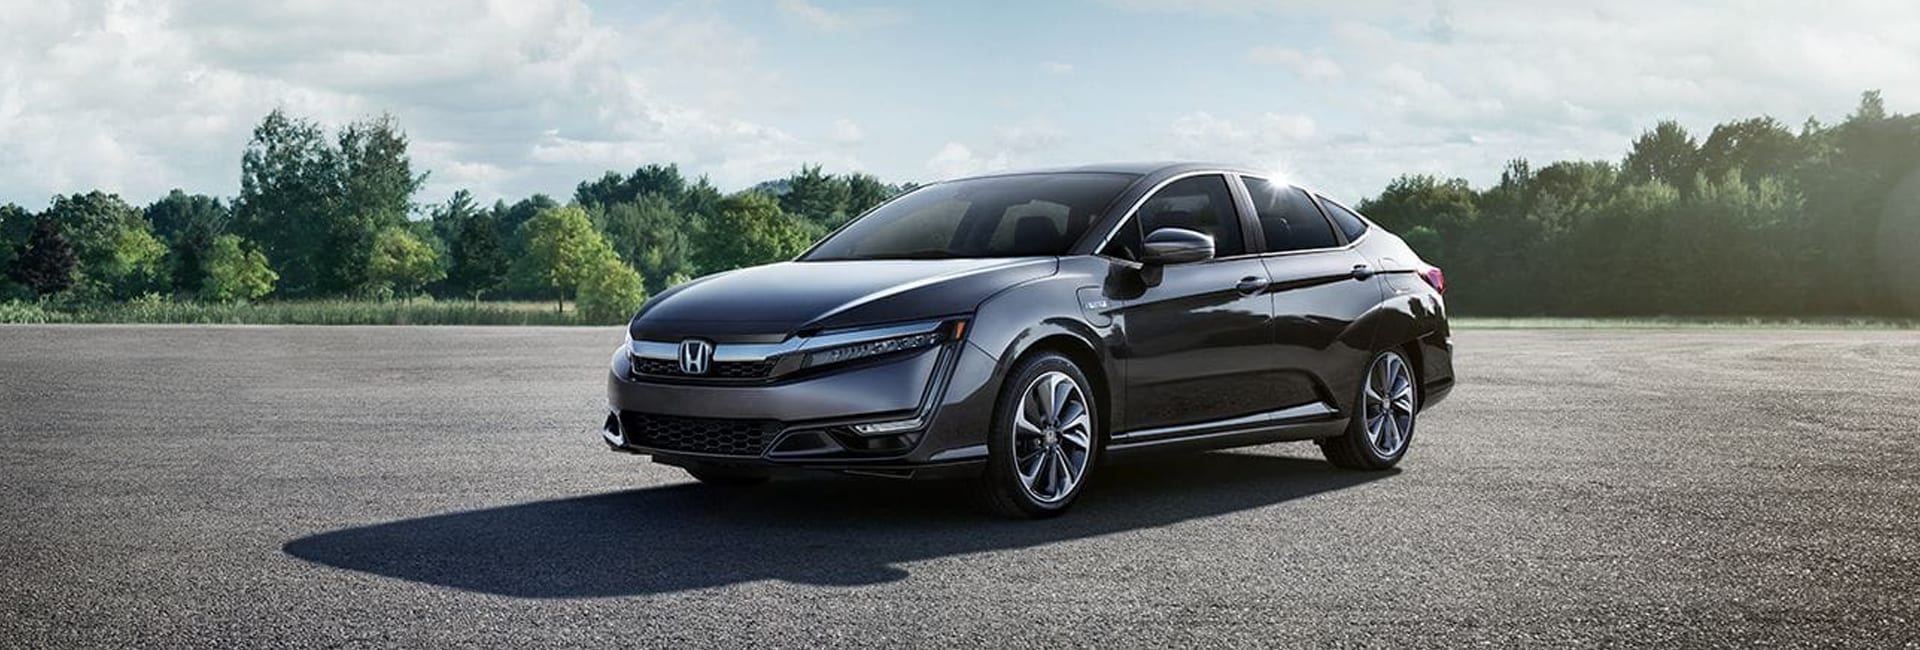 2017 Honda Clarity Exterior Features